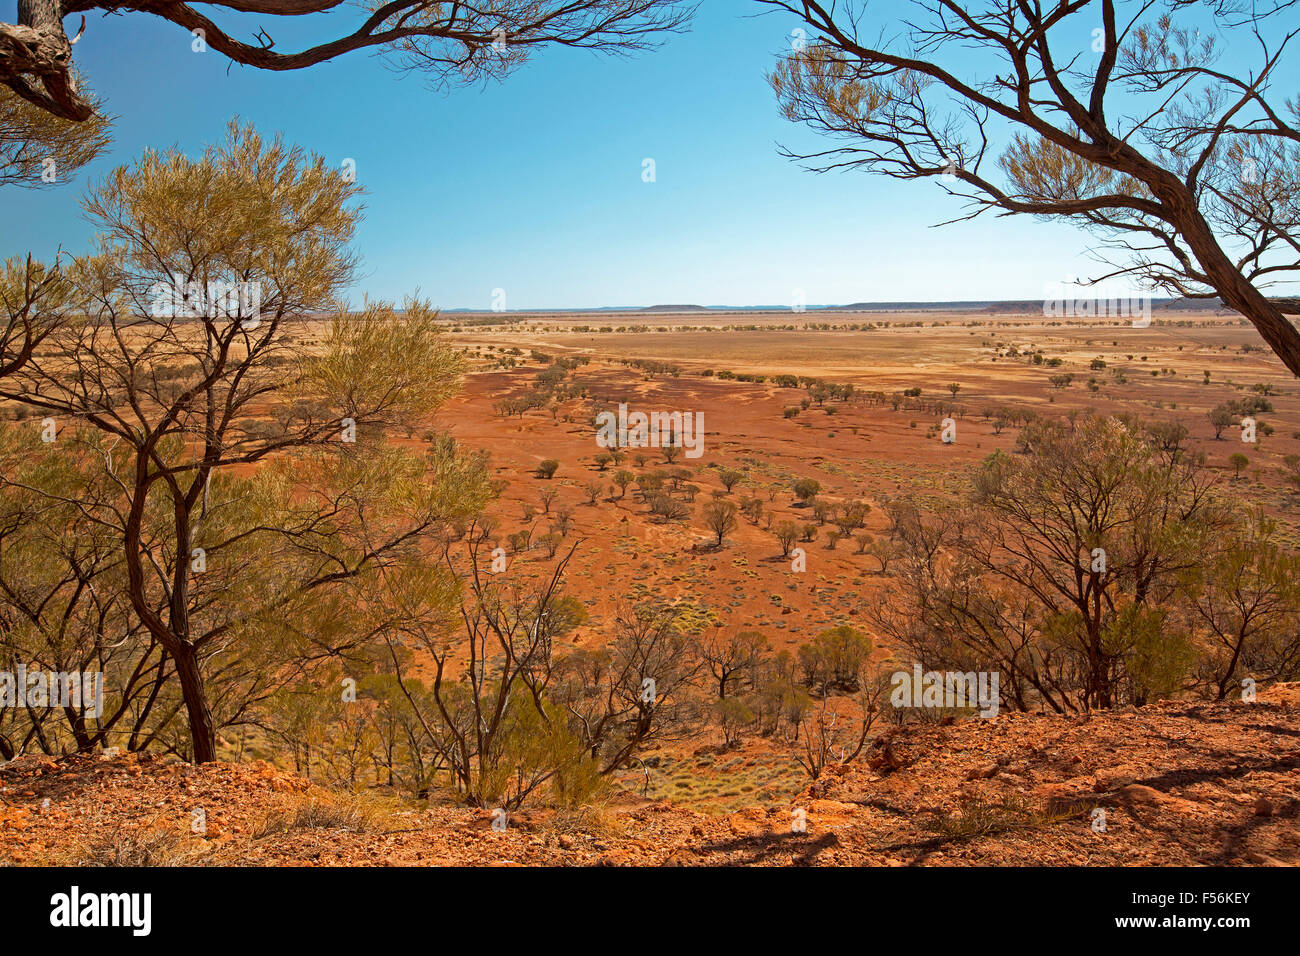 View from hilltop lookout of barren red outback plains stretching to horizon under blue sky during drought at Bladensburg - Stock Image